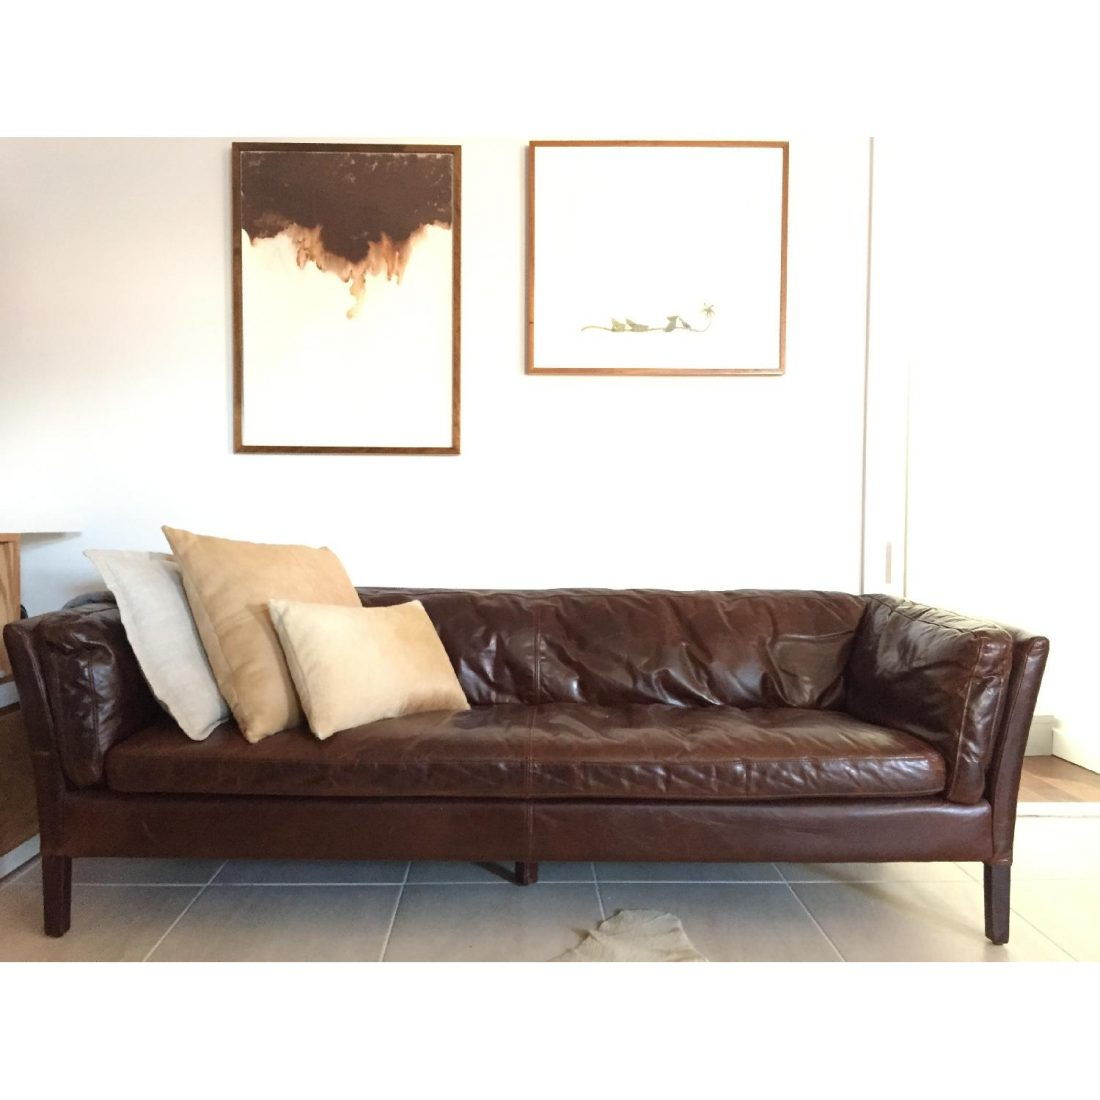 Restoration Hardware Leather Chairs Restoration Hardware Sorensen Leather Sofa Copycatchic